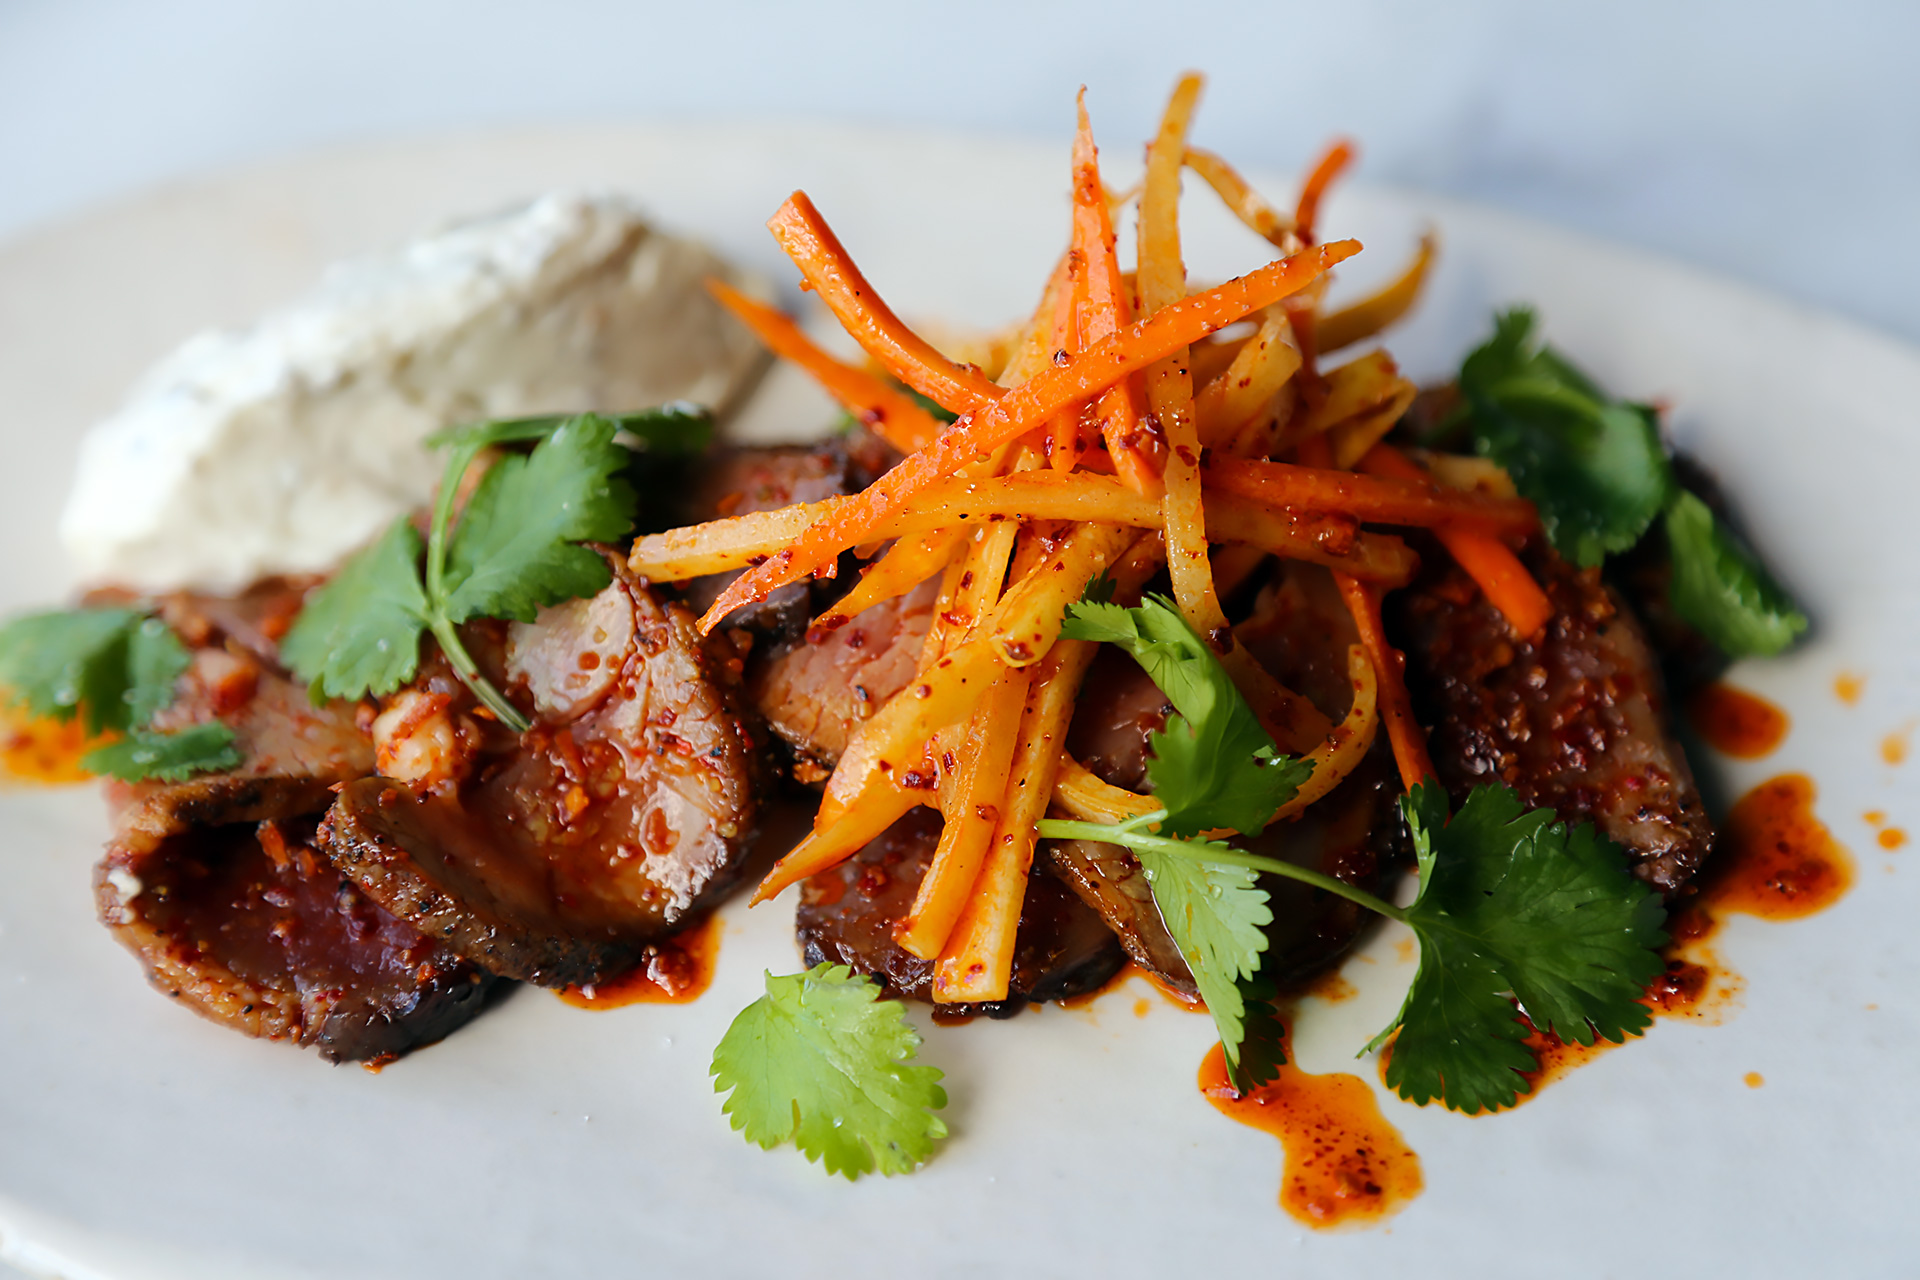 Lamb leg with peppercorn labneh and carrot salad